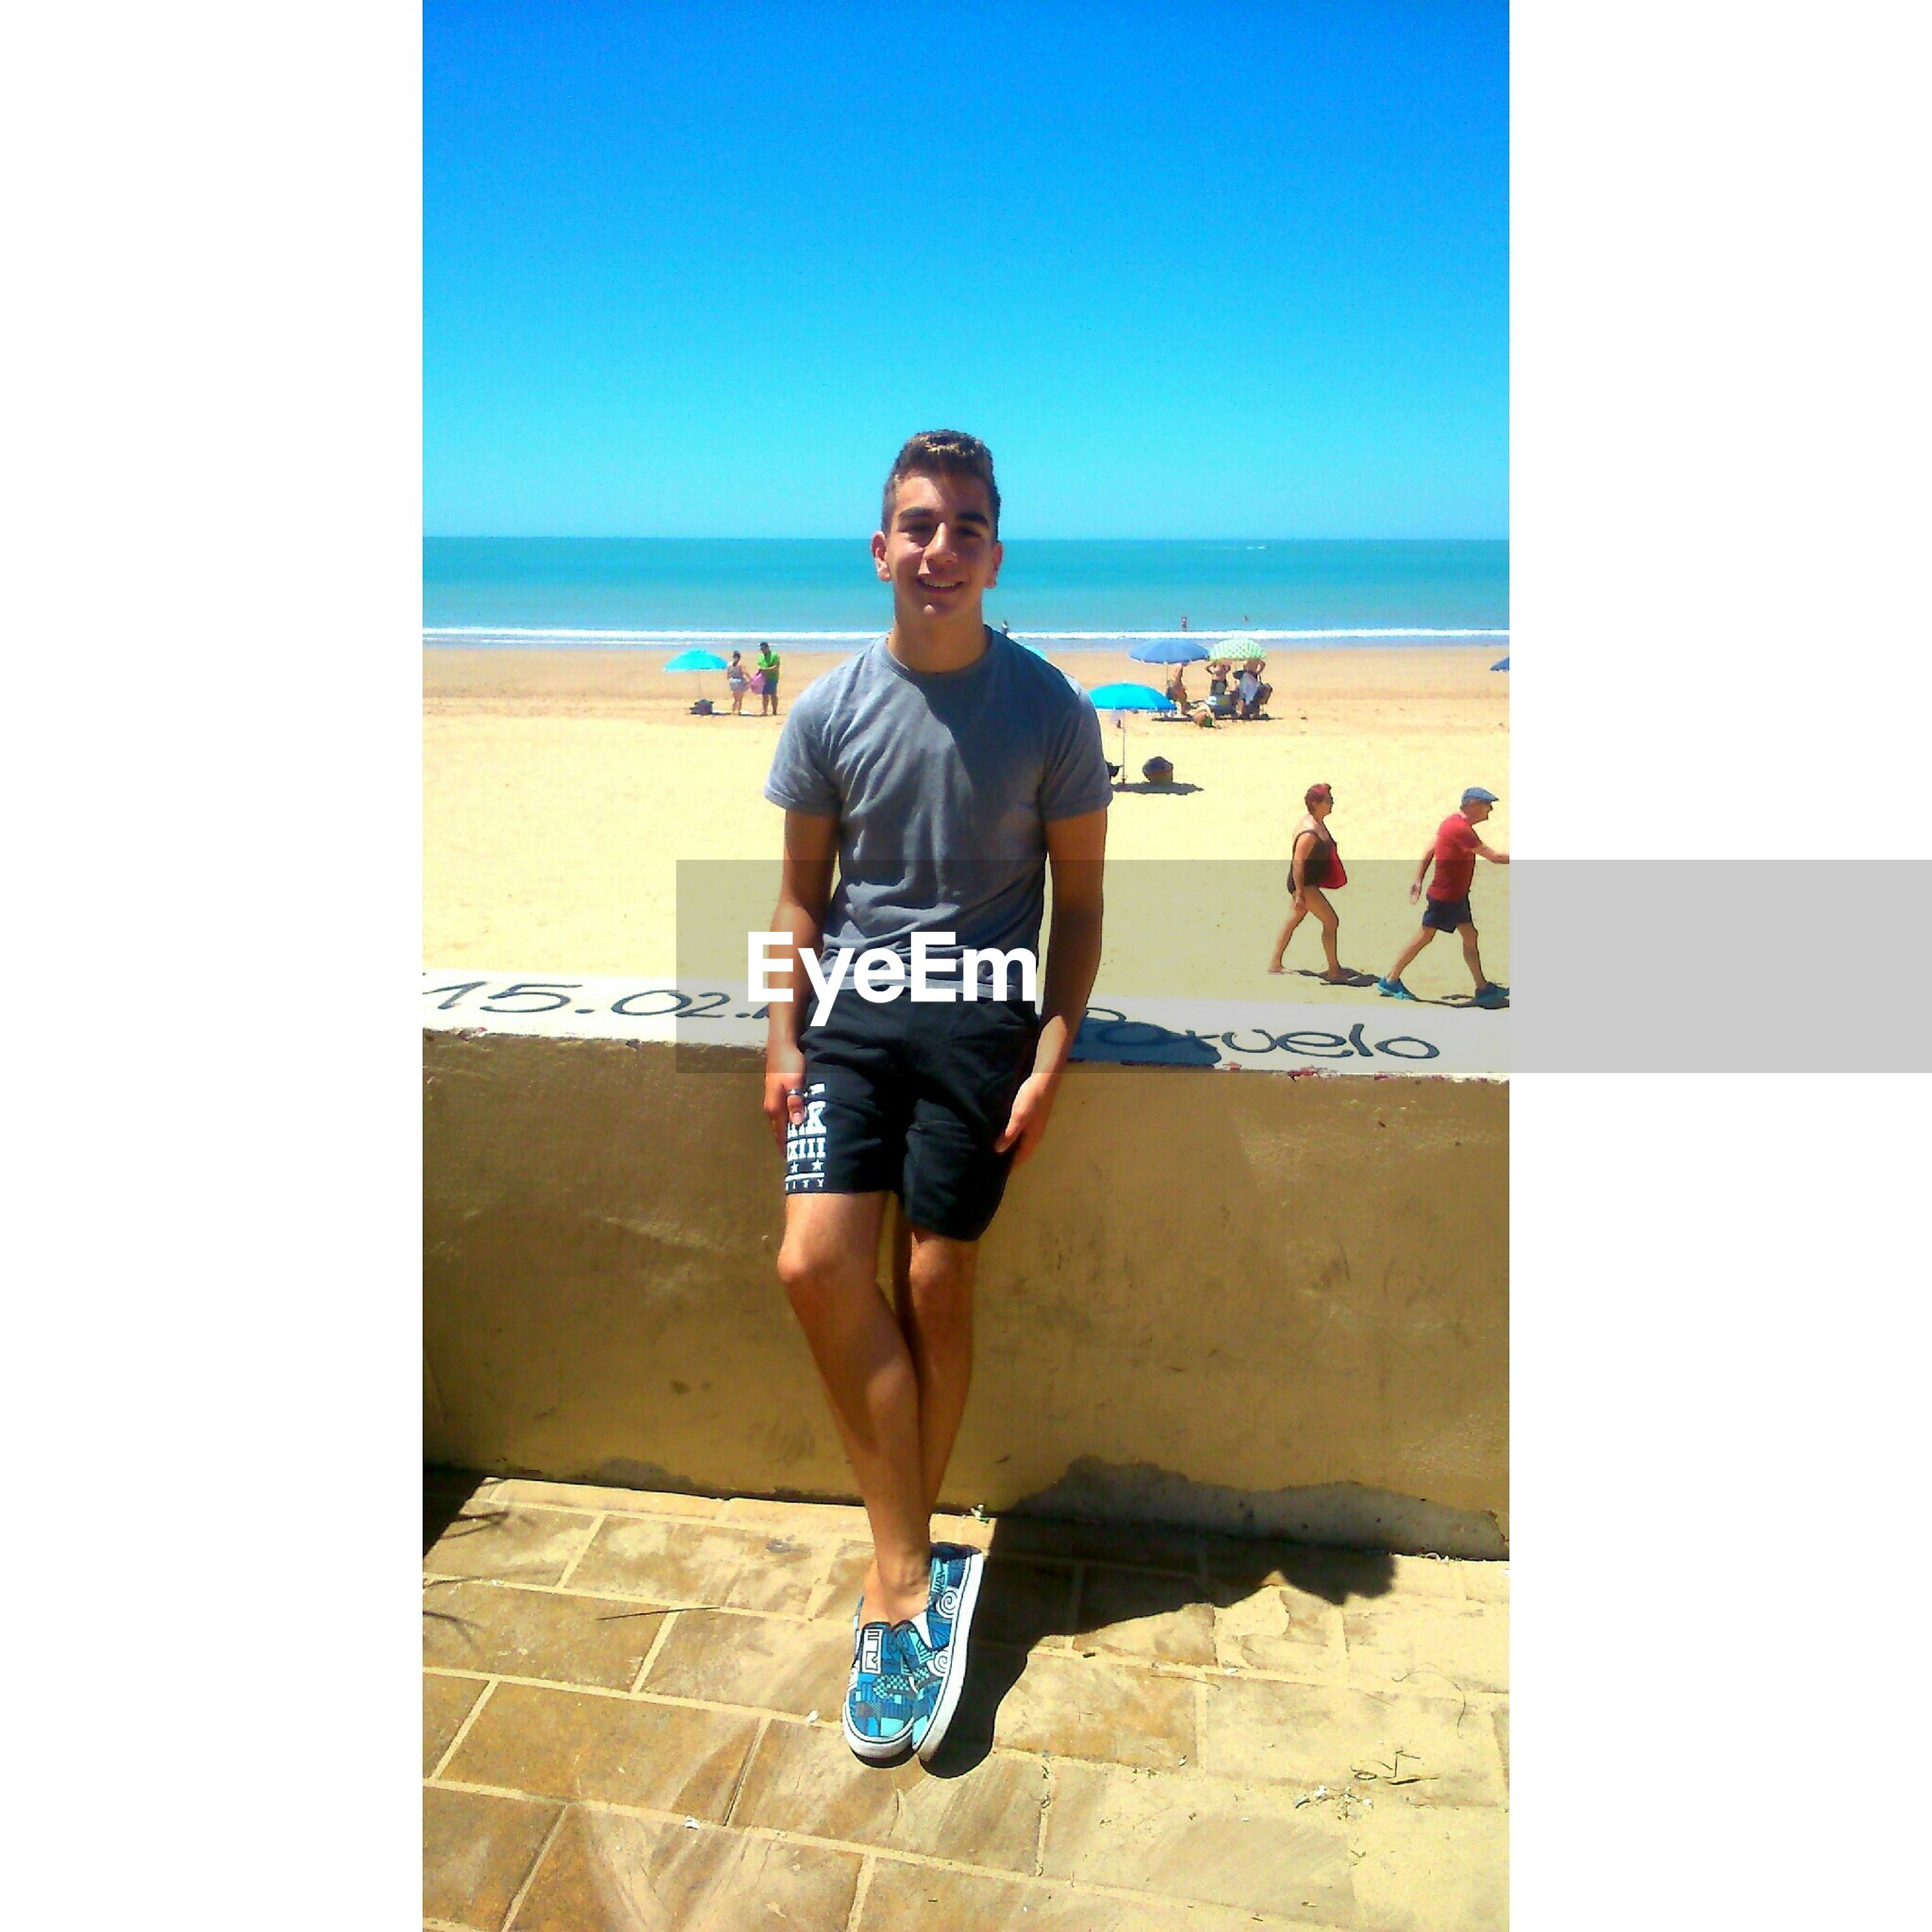 sea, horizon over water, clear sky, lifestyles, beach, leisure activity, copy space, young adult, transfer print, person, water, full length, casual clothing, shore, standing, looking at camera, auto post production filter, portrait